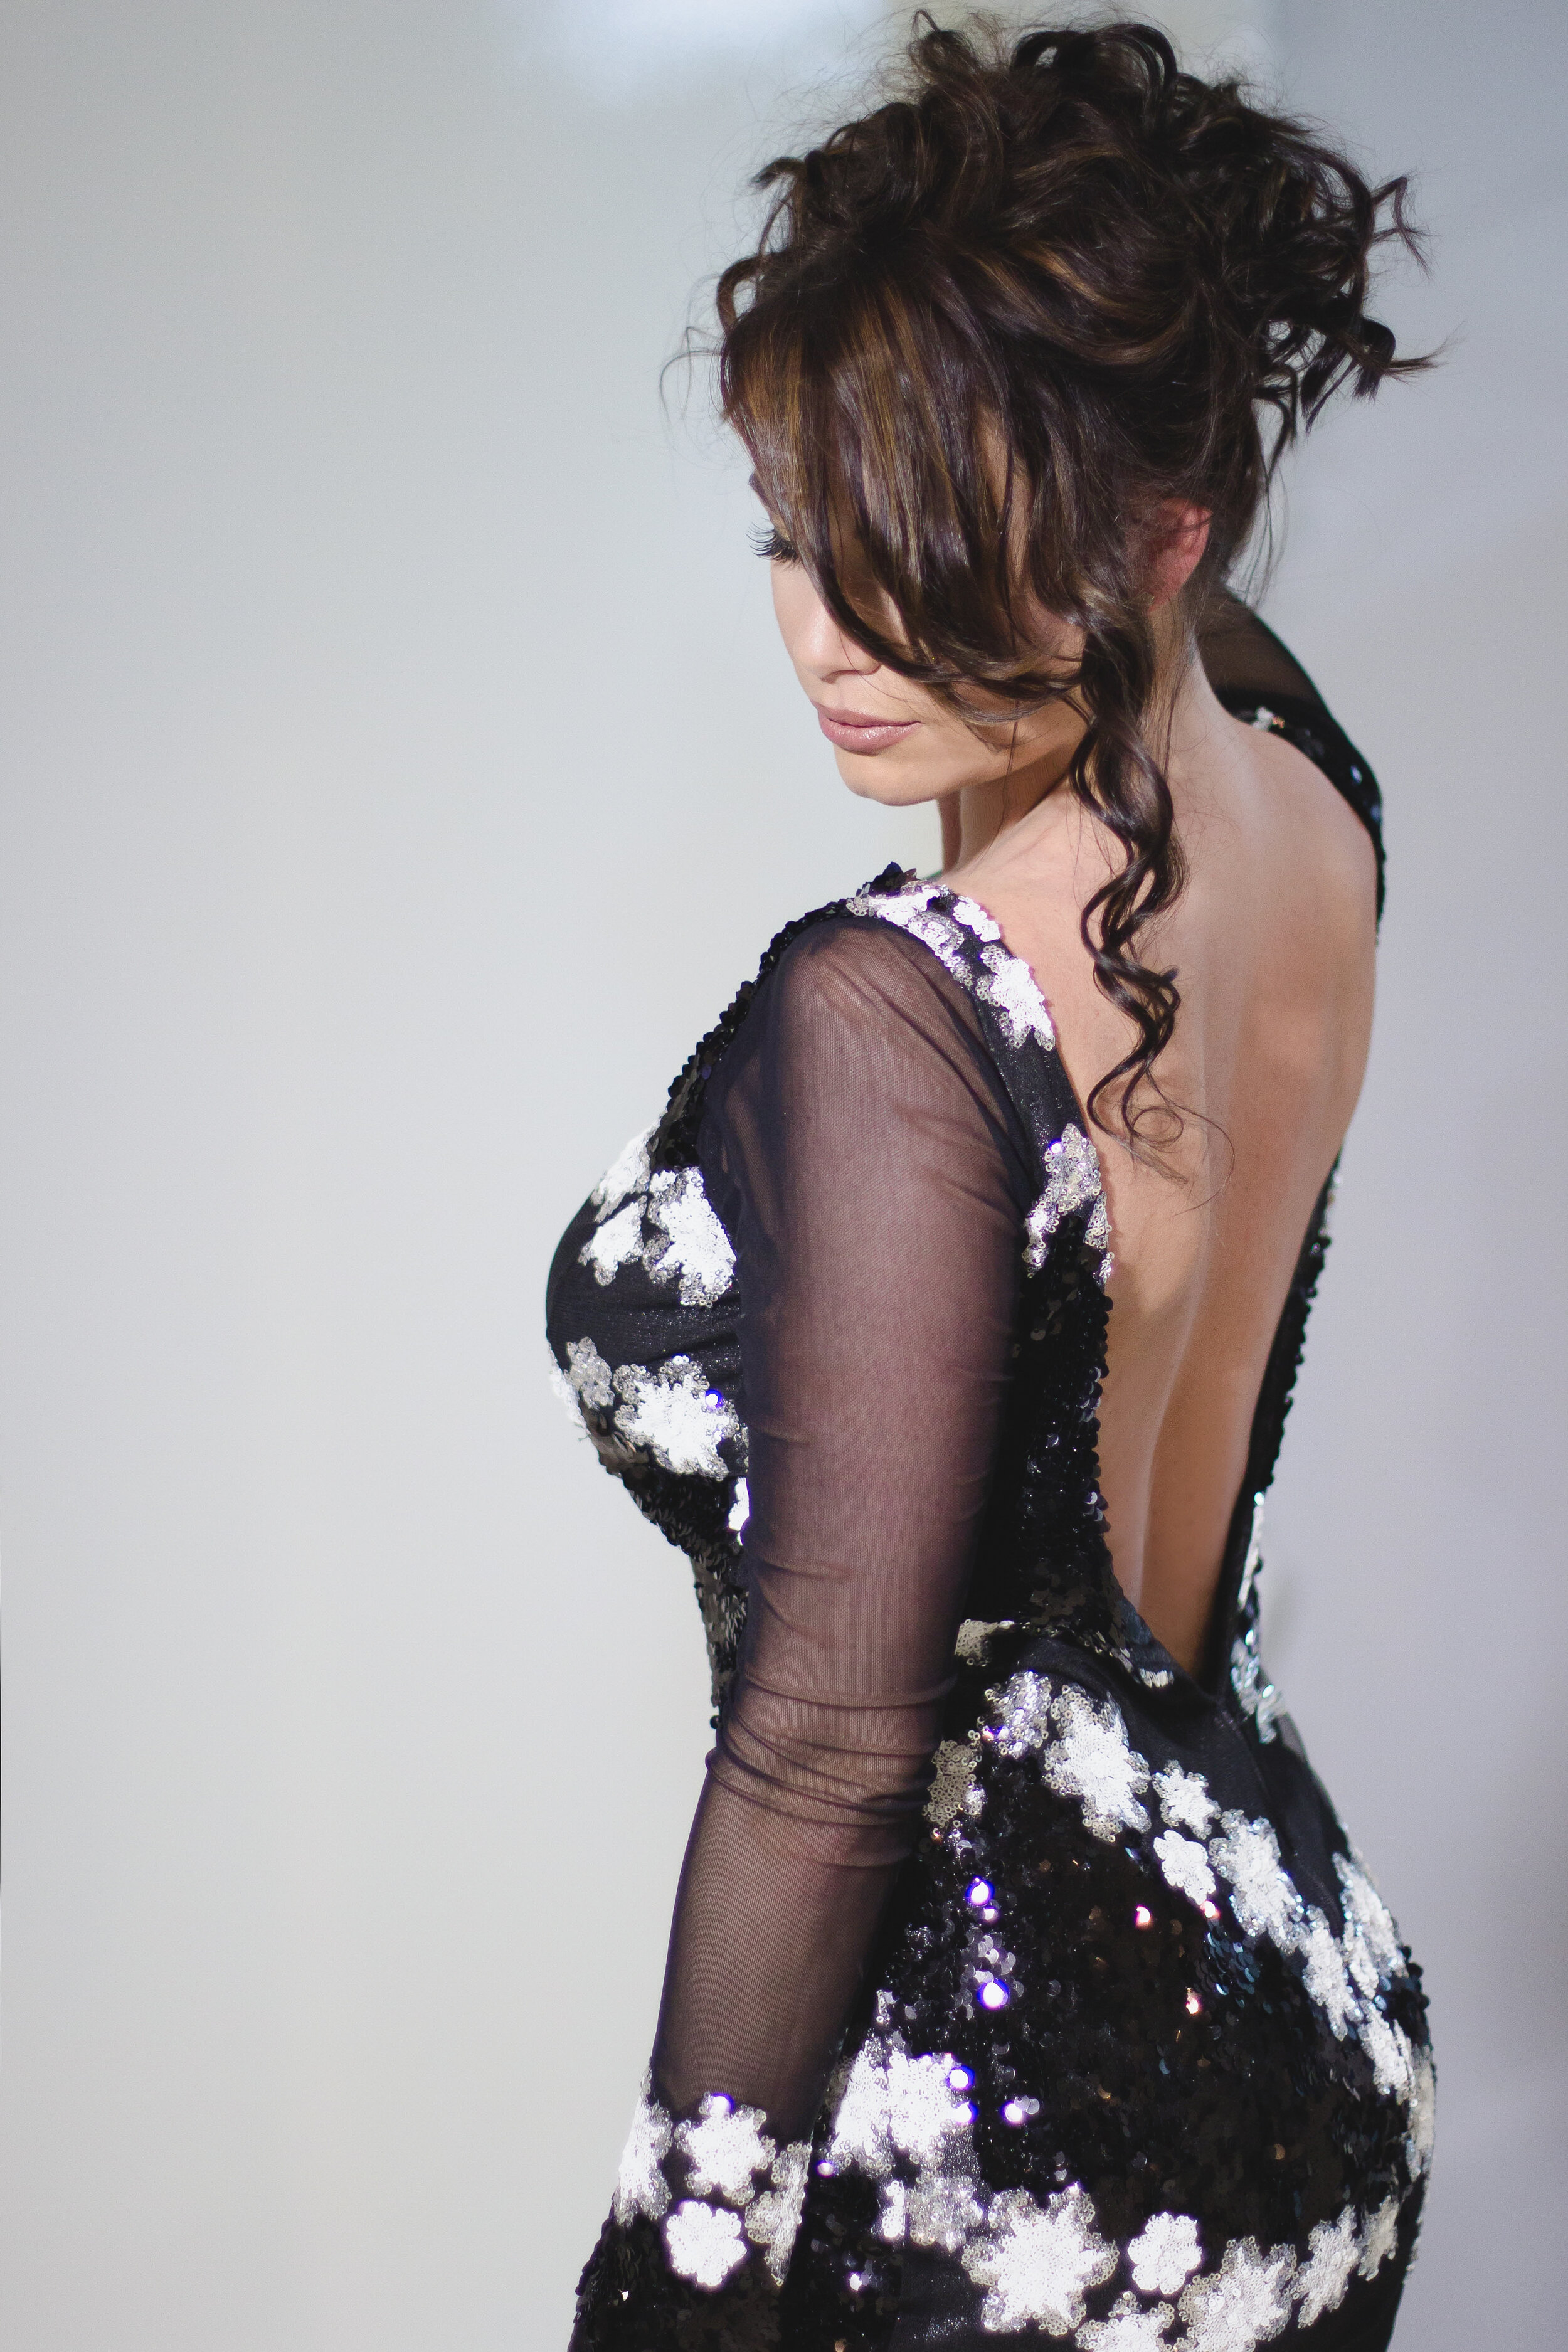 Open back long sleeved evening gown made of floral black and white sequins by Lana Gerimovich.jpg